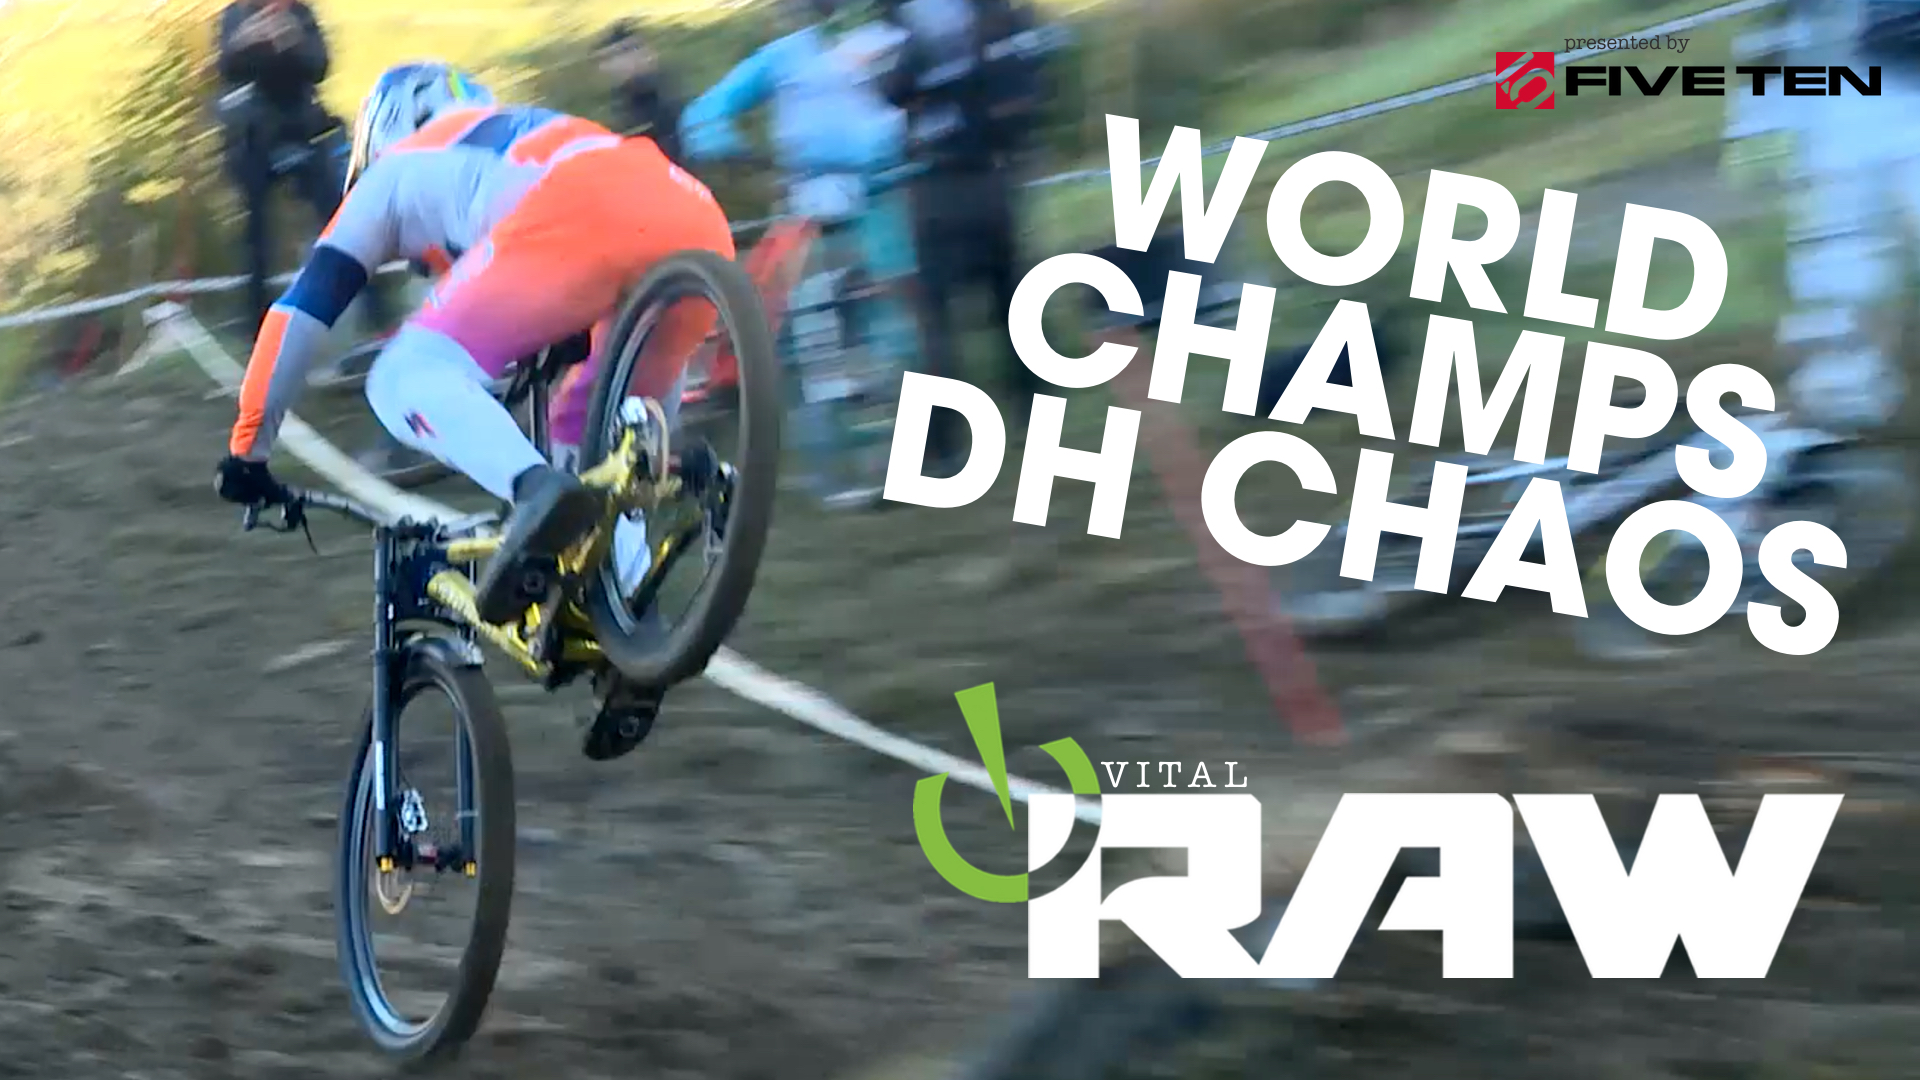 Vital RAW - World Champs DH Seeding Day